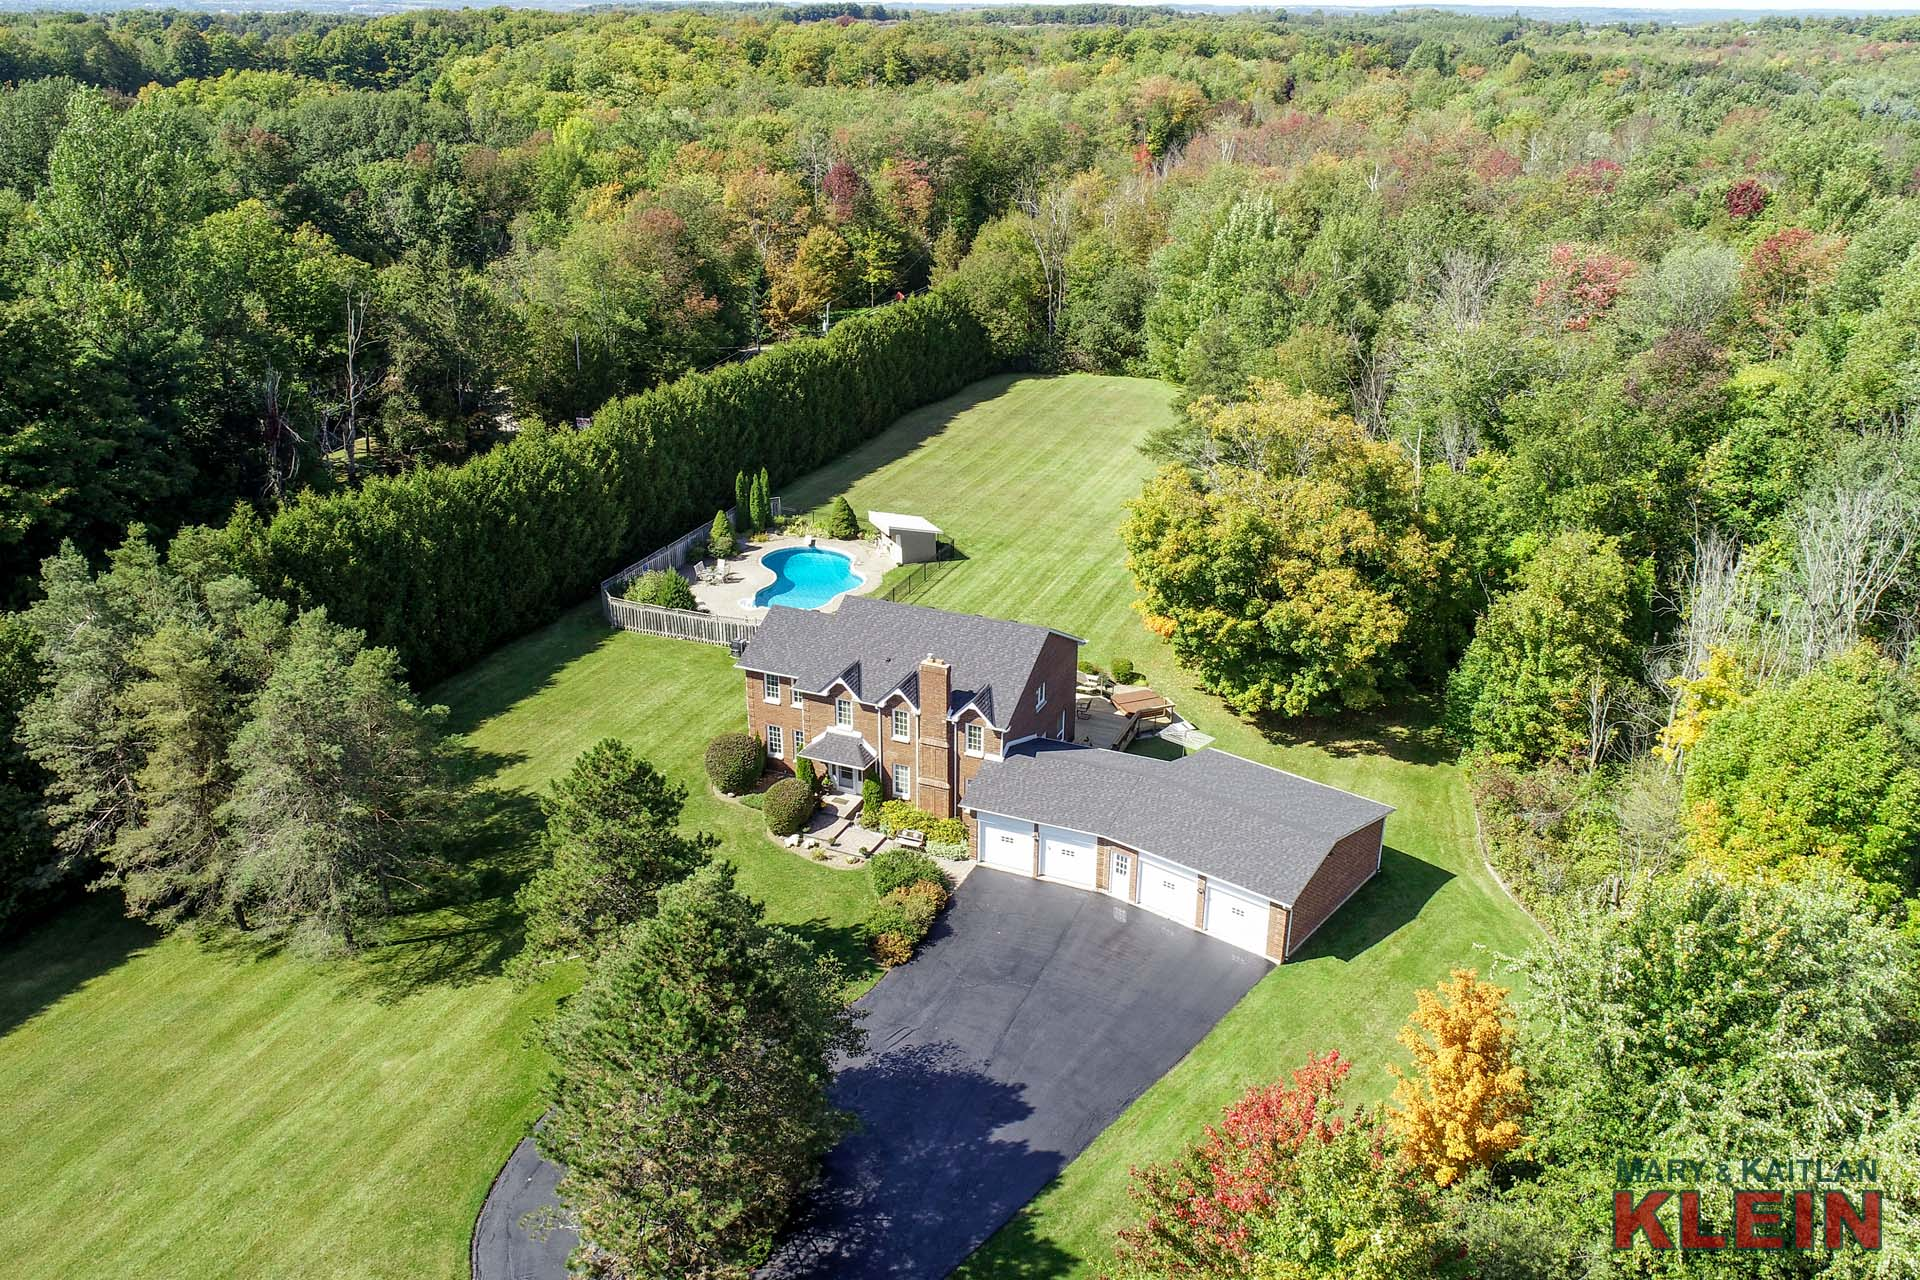 4 Bedroom home for sale in Caledon on 3.57 Acres, Klein